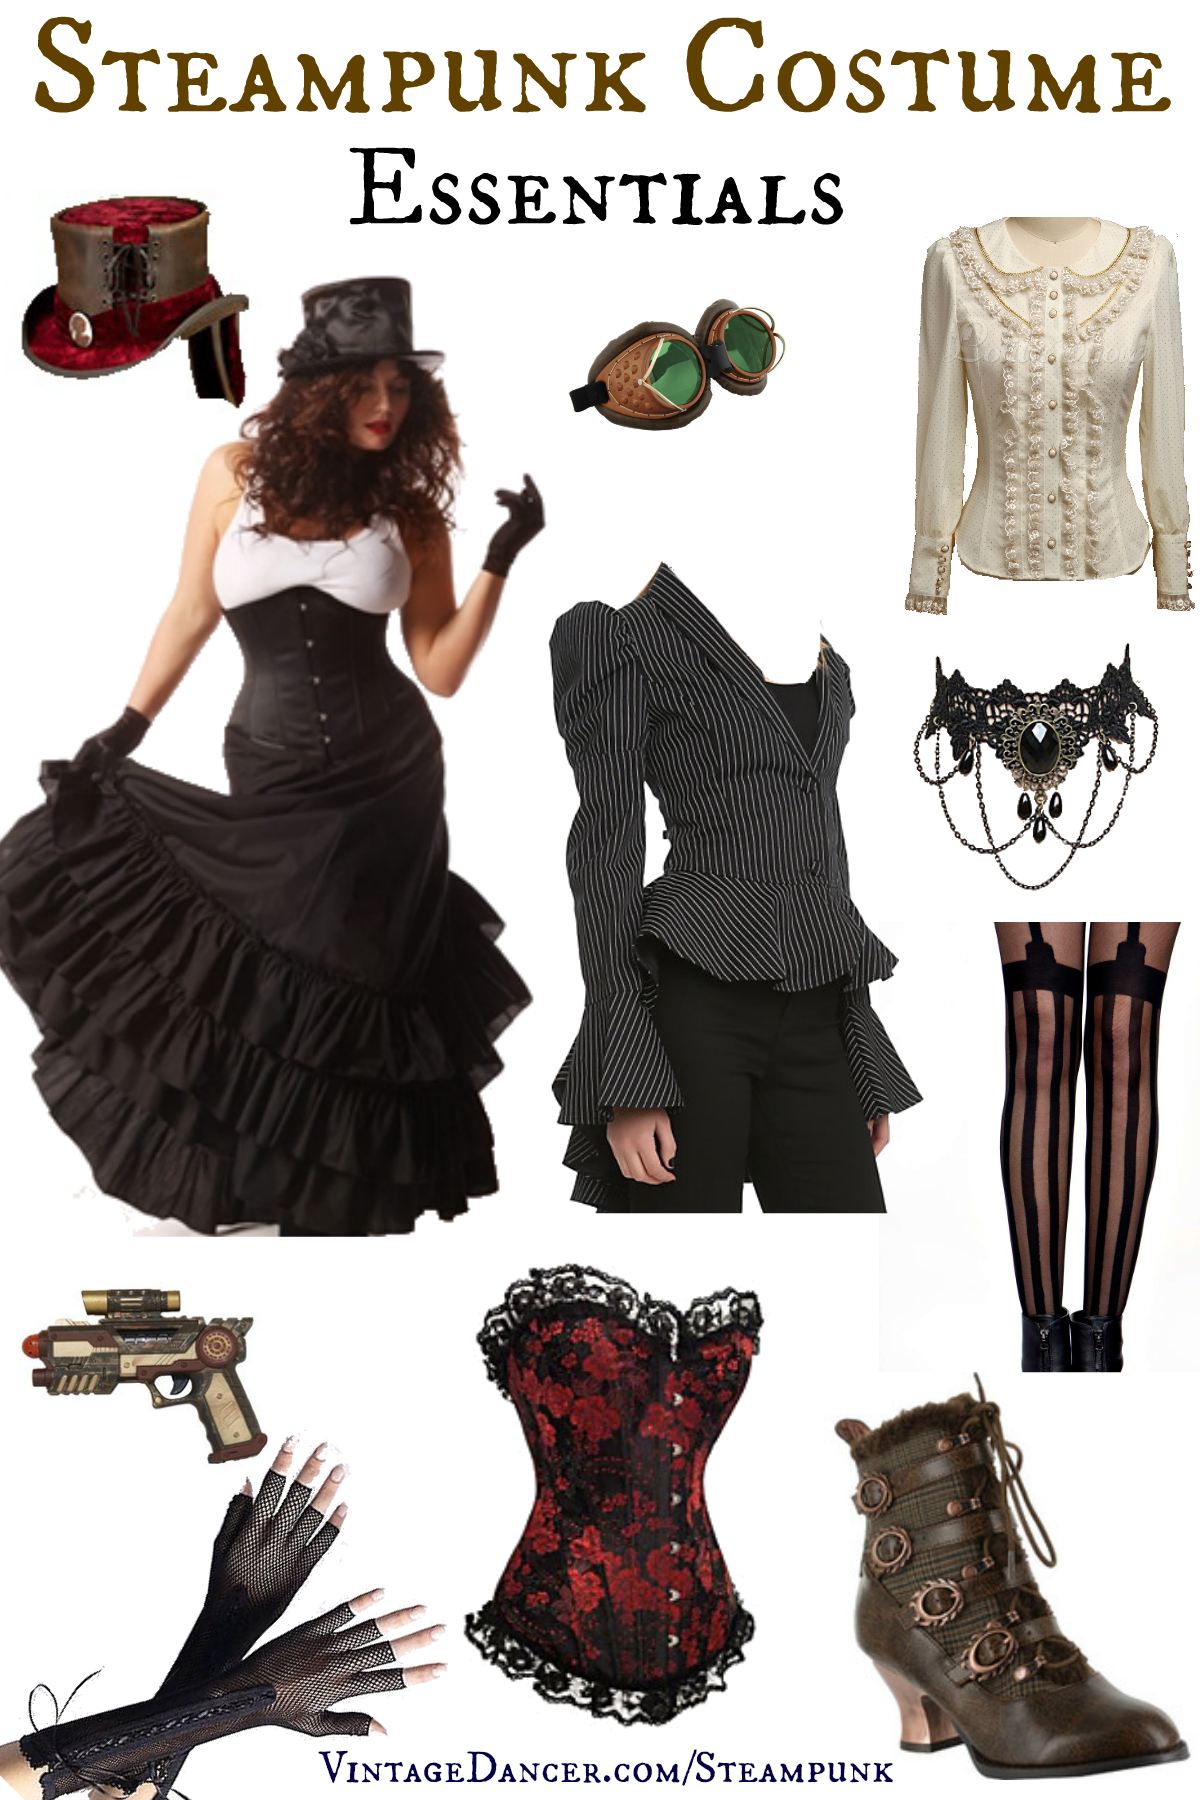 Steampunk Costume Essentials for Women